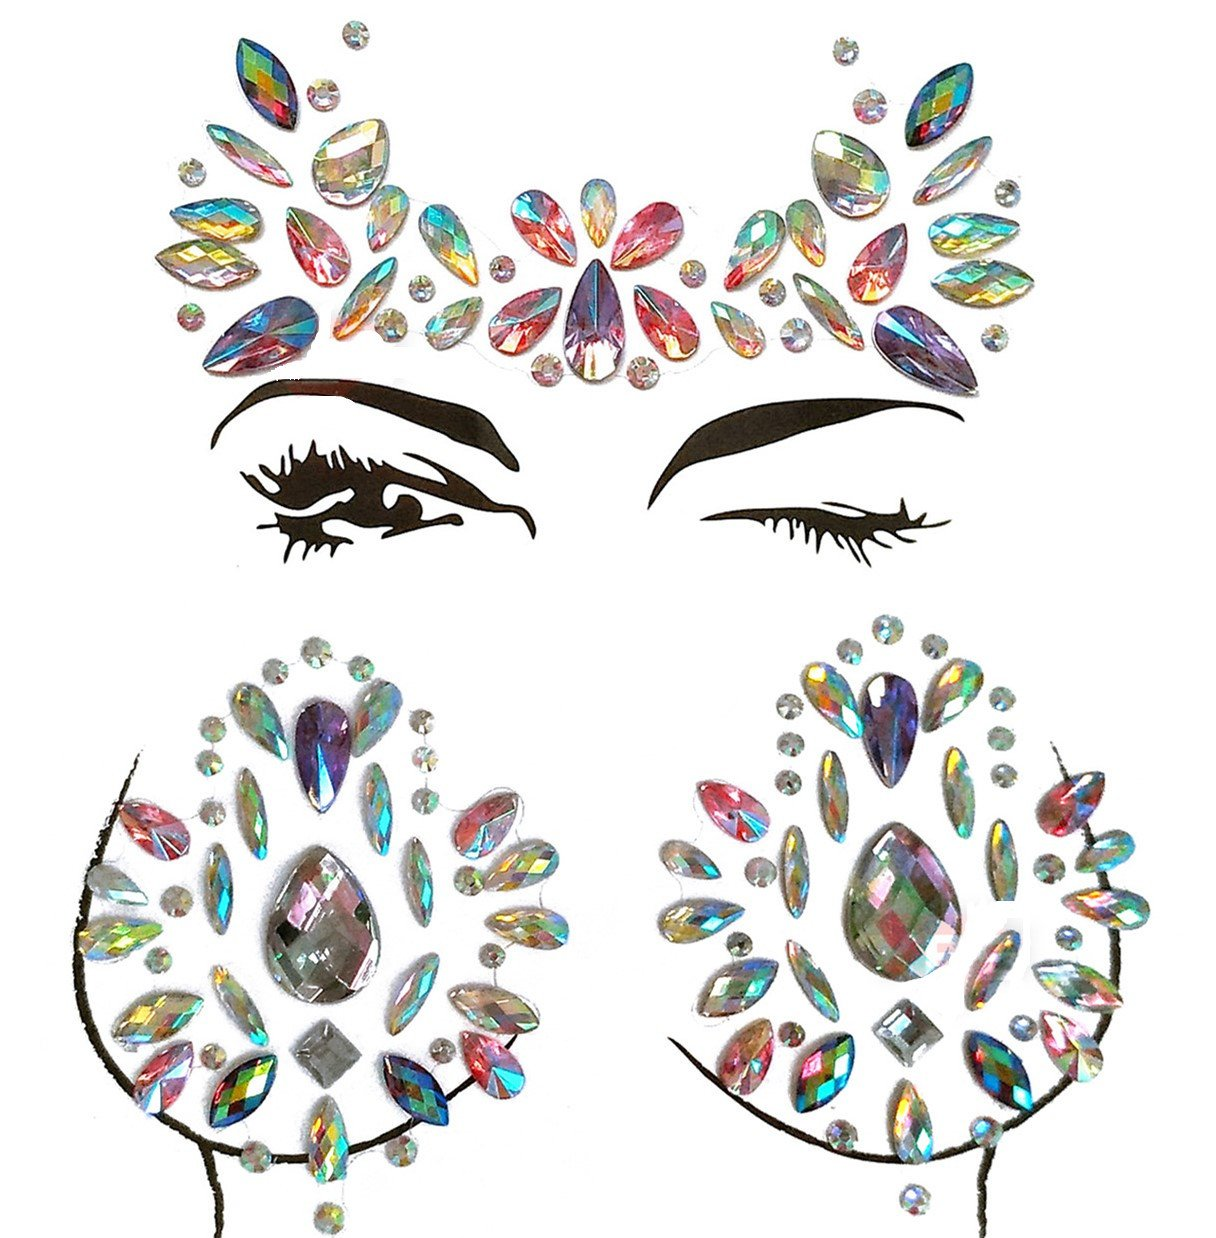 MineSign 8 Pack Face Jewels Festival Tattoo Set Face Gems Glitter Bindi Costume Makeup Rhinestone Eyes Body Rave Pasties for Party Roller (Mermaid Face Chest Kit) by MineSign (Image #2)